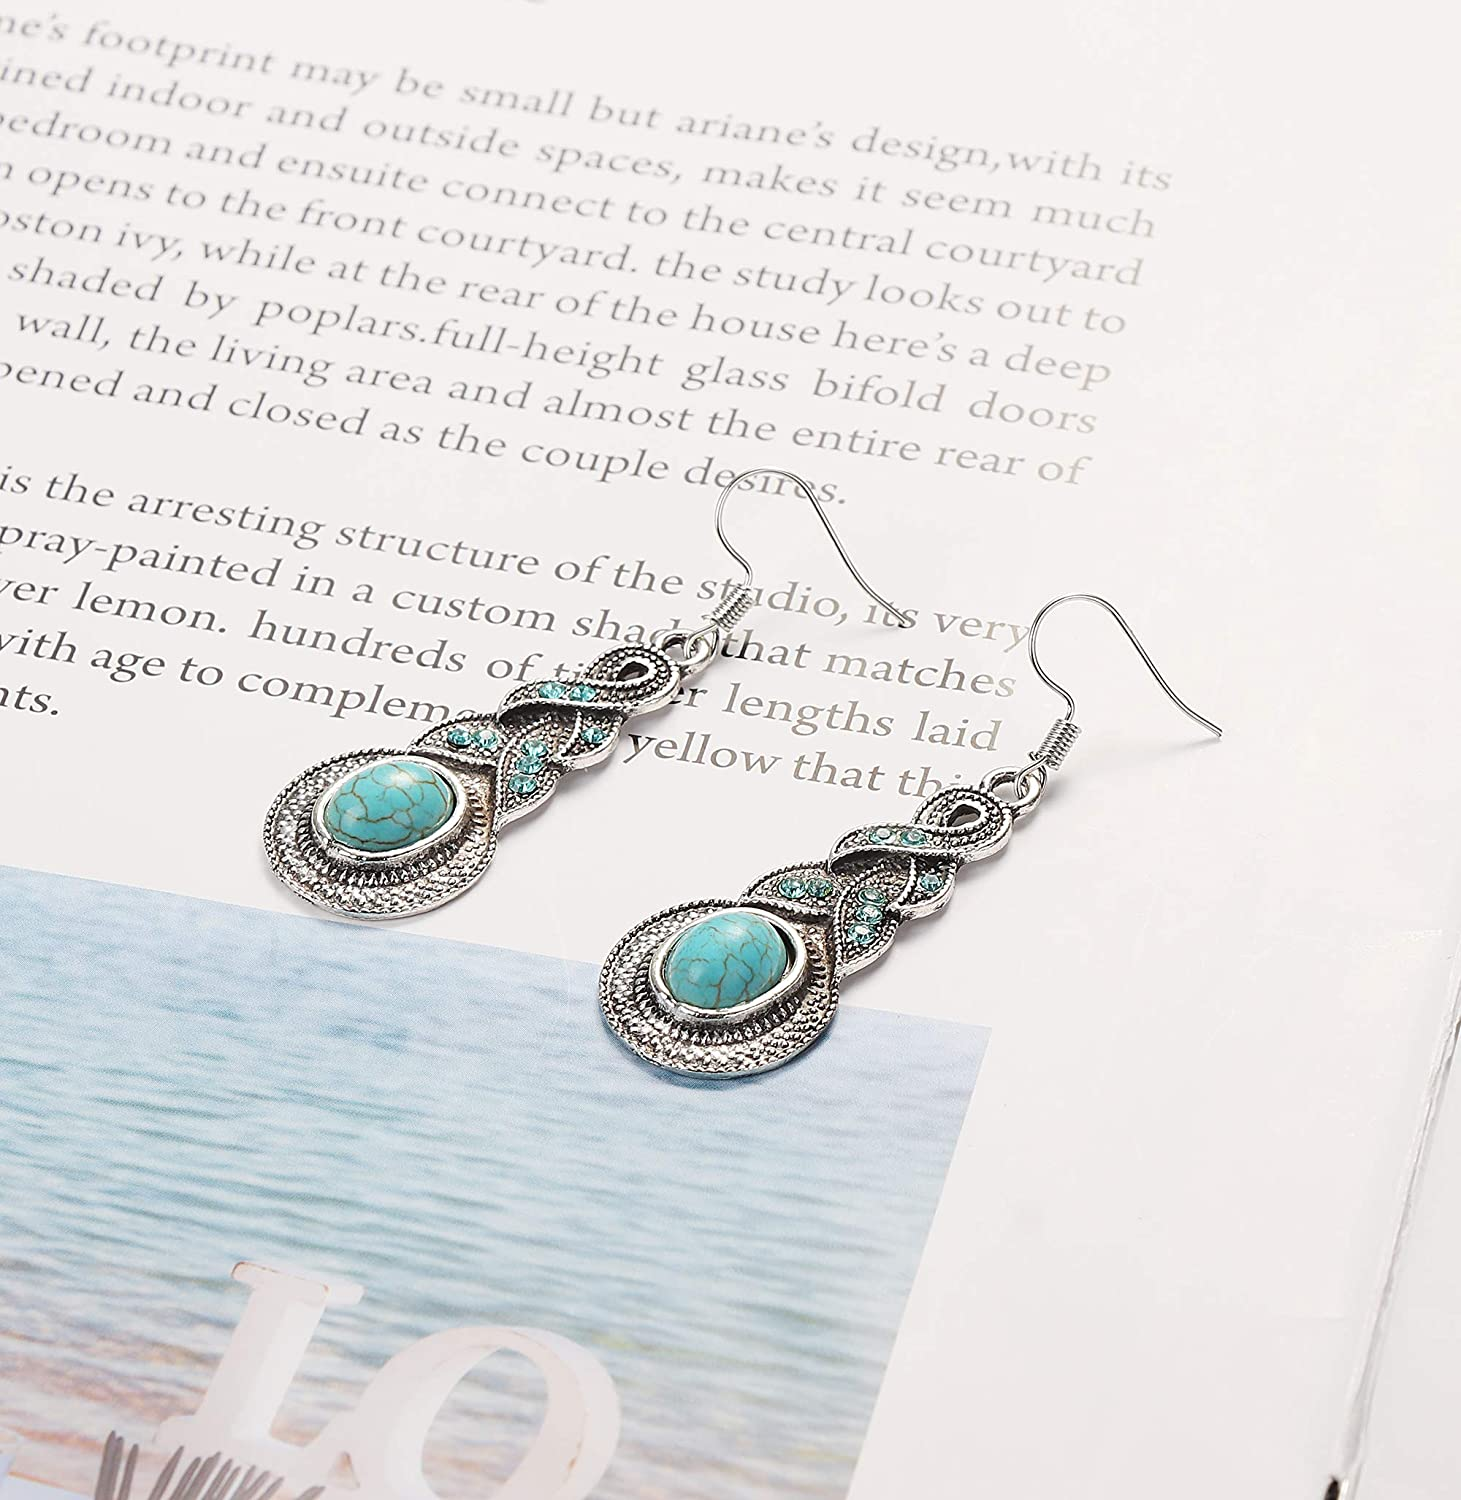 LOLIAS Womens Retro Turquoise Earrings Necklace Jewelry Set Fashionable Jewelry